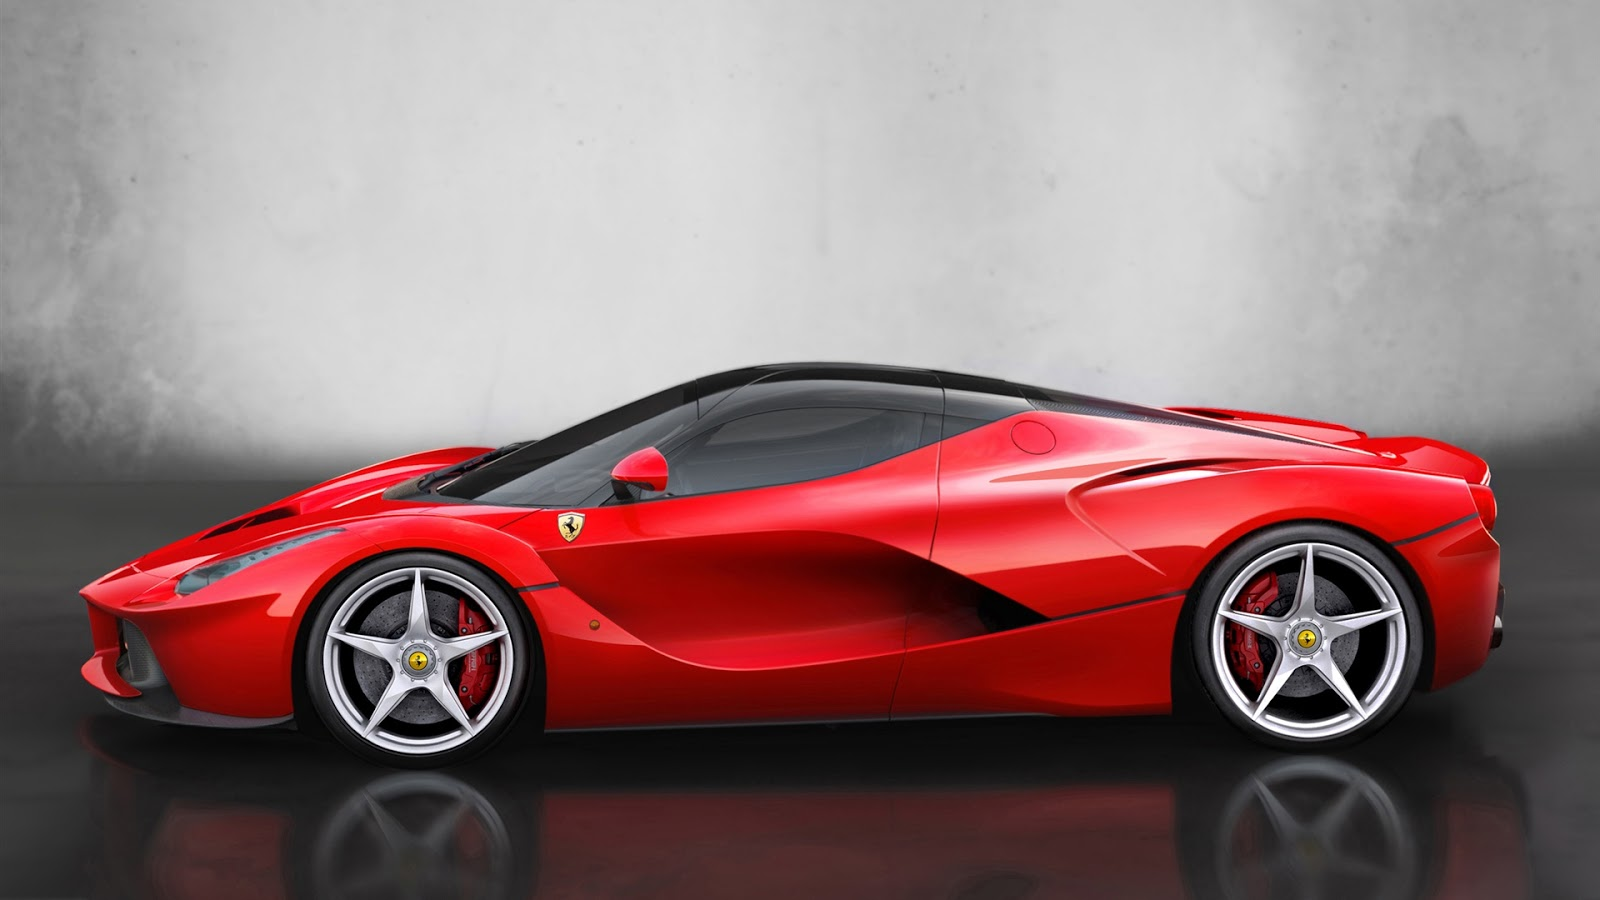 Ferrari Red Supercar | Full HD Desktop Wallpapers 1080p